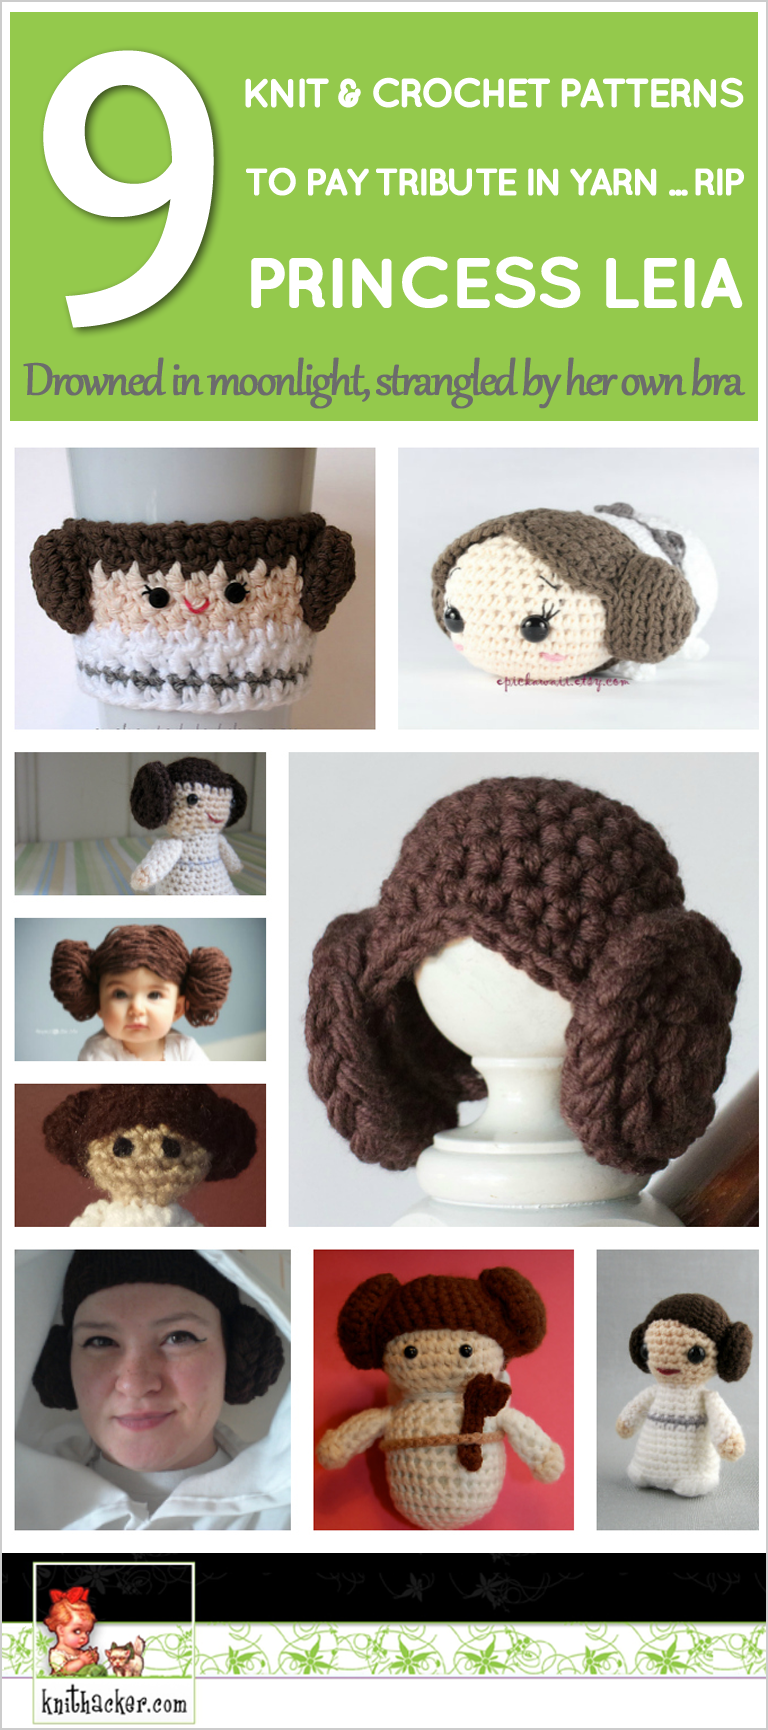 Pay Tribute to Carrie Fisher With 9 Knit and Crochet Princess Leia Patterns ... #RIP ... Drowned in Moonlight, Strangled By Her Own Bra … #Carrie #Crochet #Fisher #Knit #Leia #patterns #Pay #Princess #princess leia hair braids #Tribute